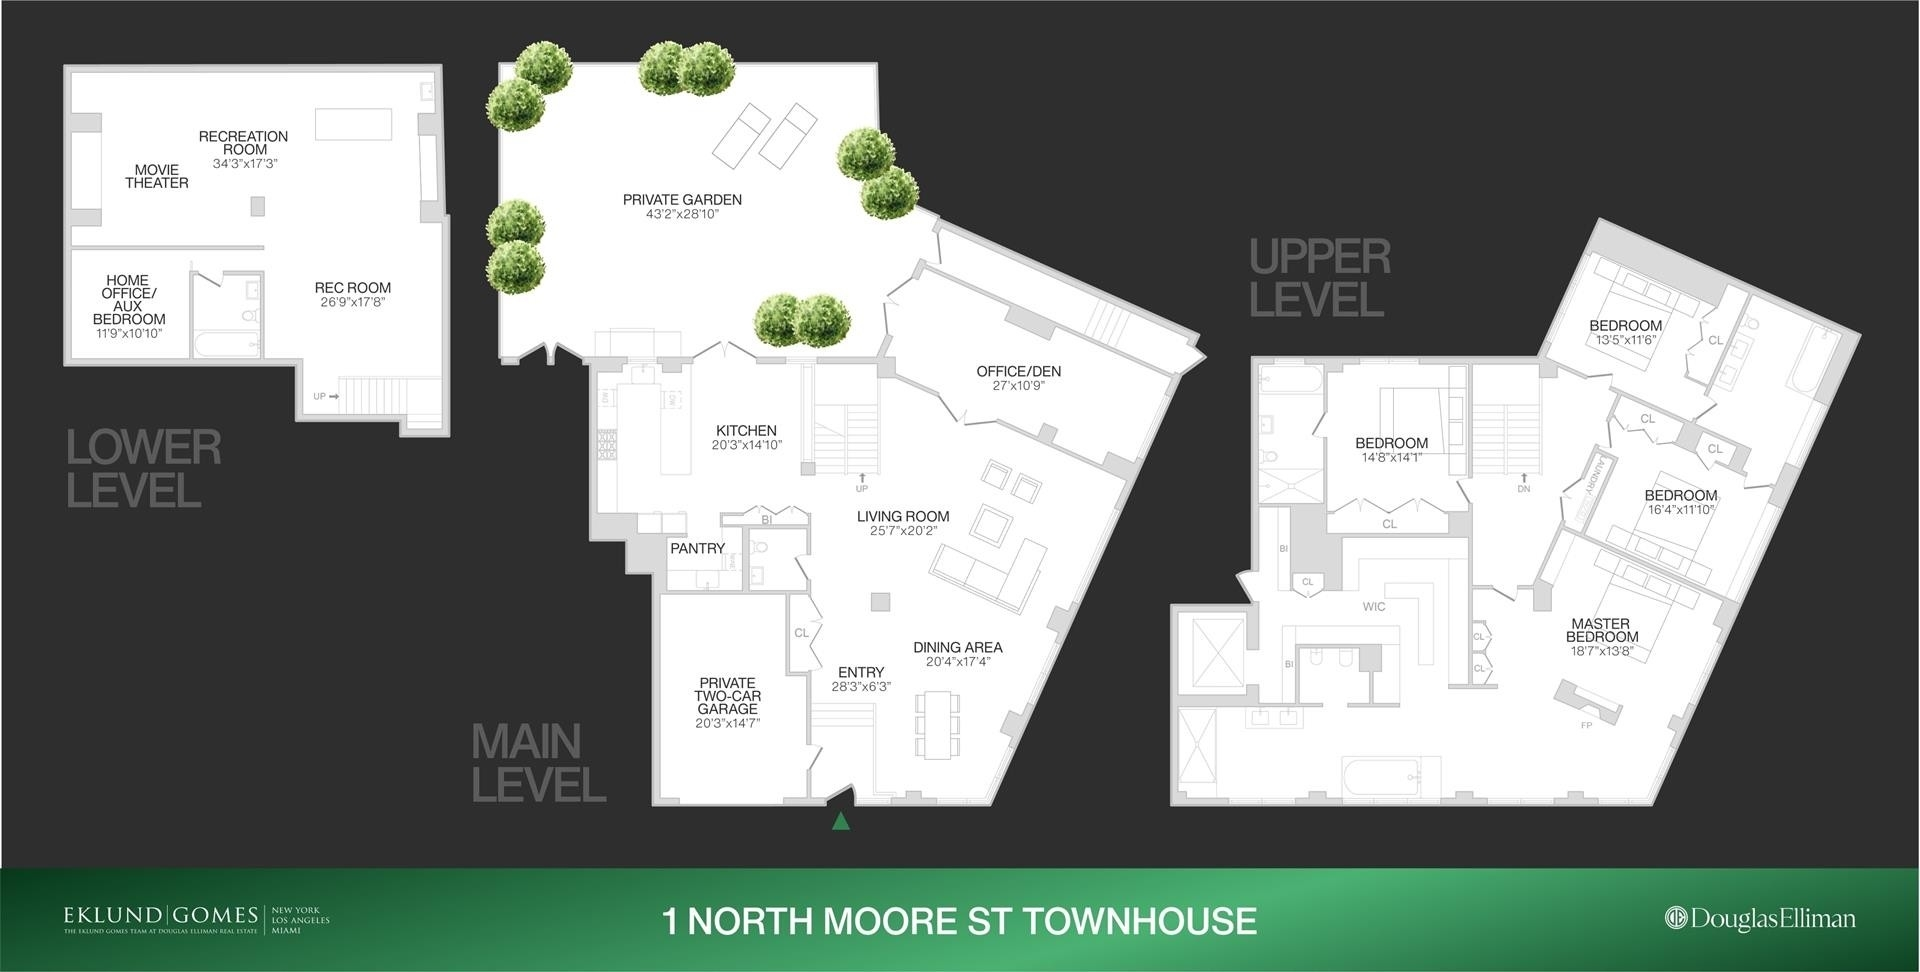 1. Condominiums for Sale at 1 North Moore St, TOWNHOUSE TriBeCa, New York, NY 10013